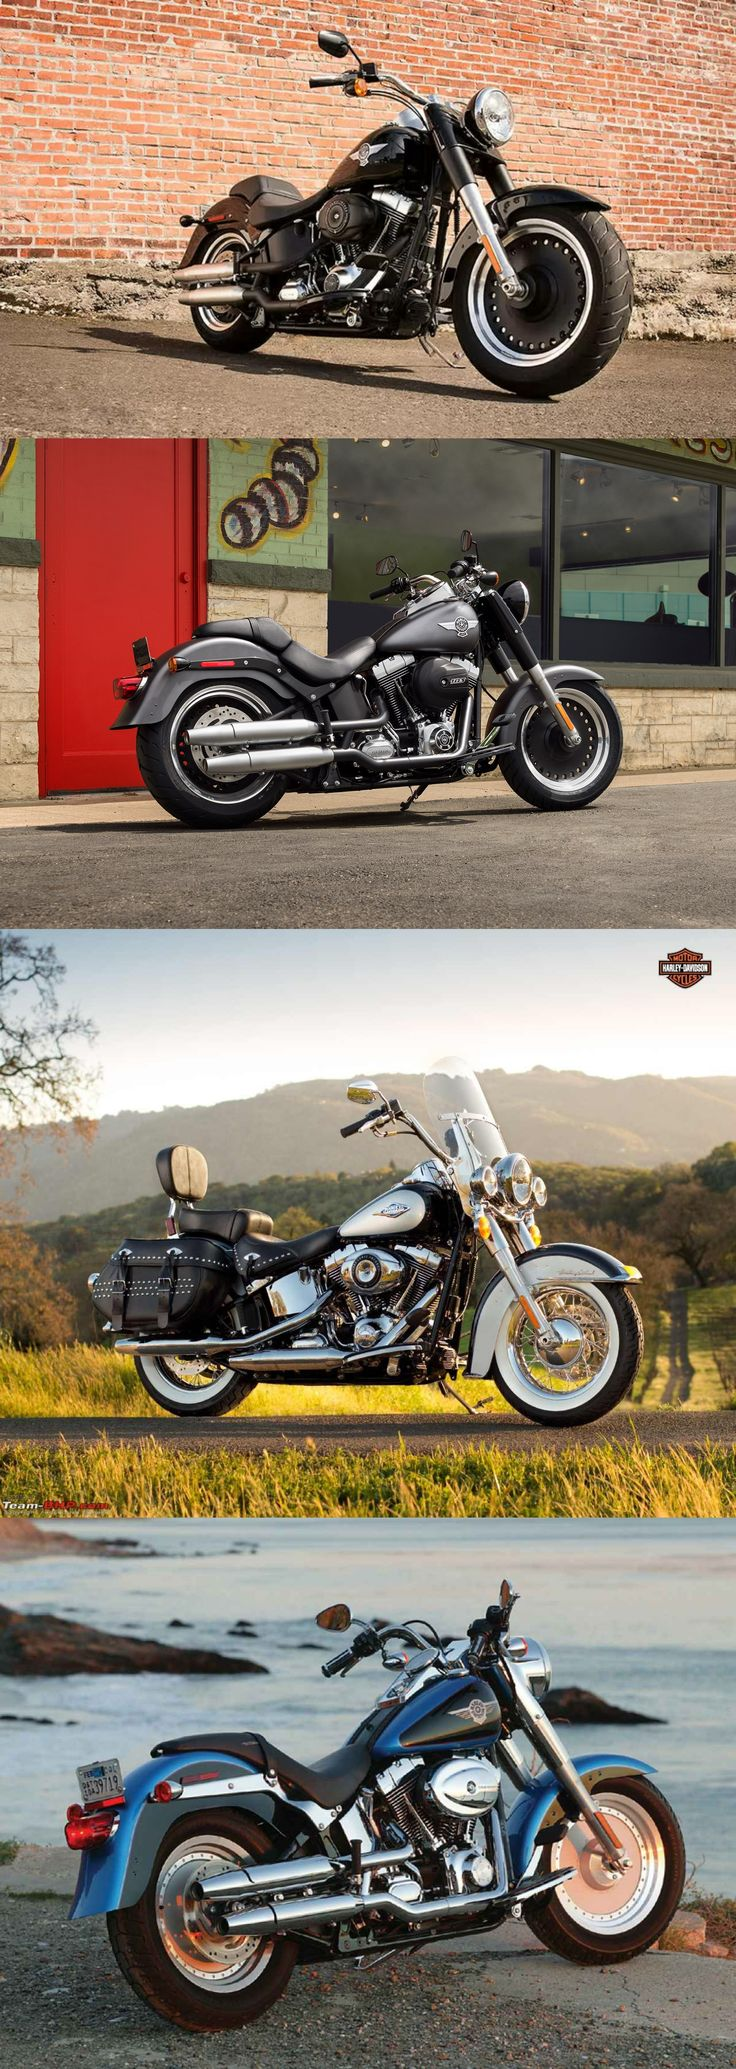 Harley Davidson India Announces Price Cut for Fatboy and Softail Models